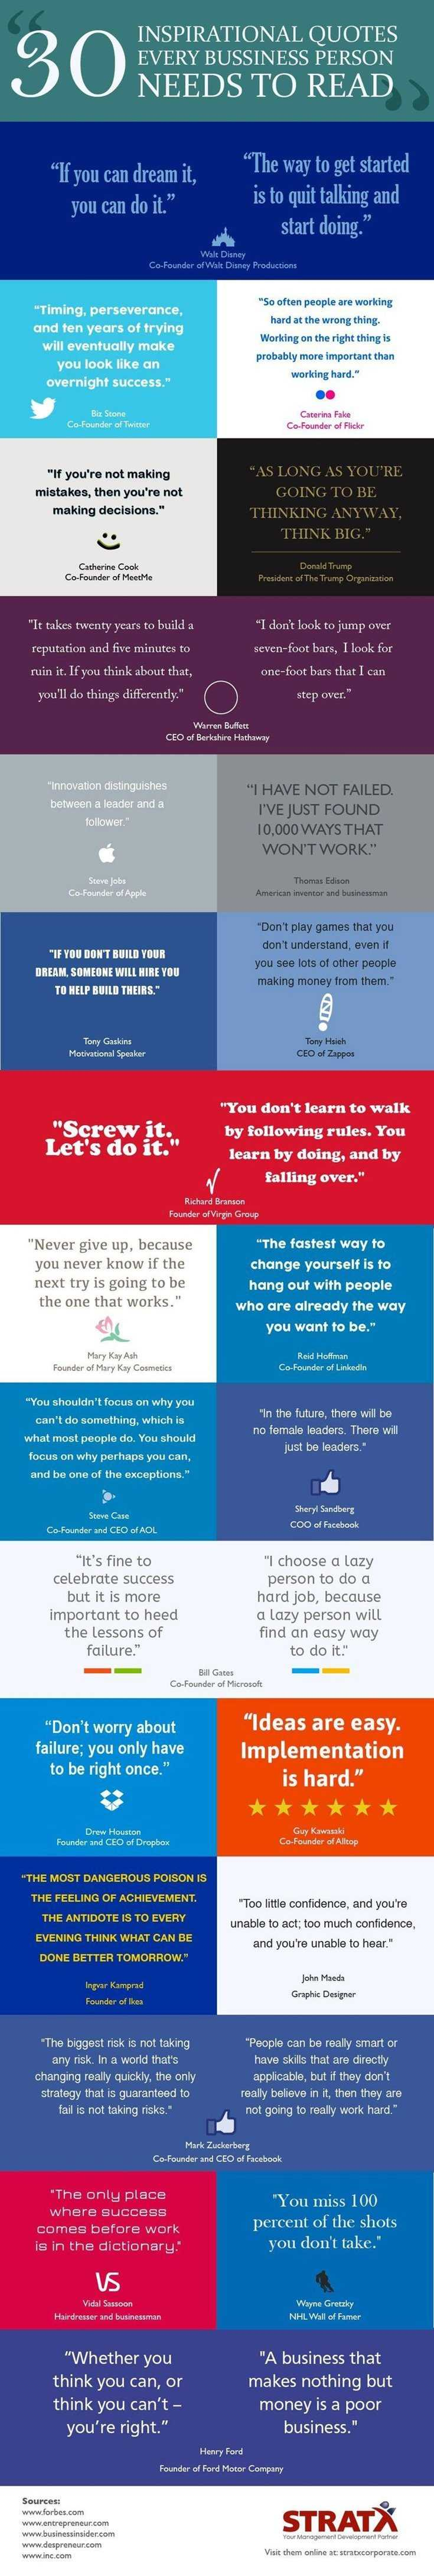 Inspirational quotes every business person needs to read